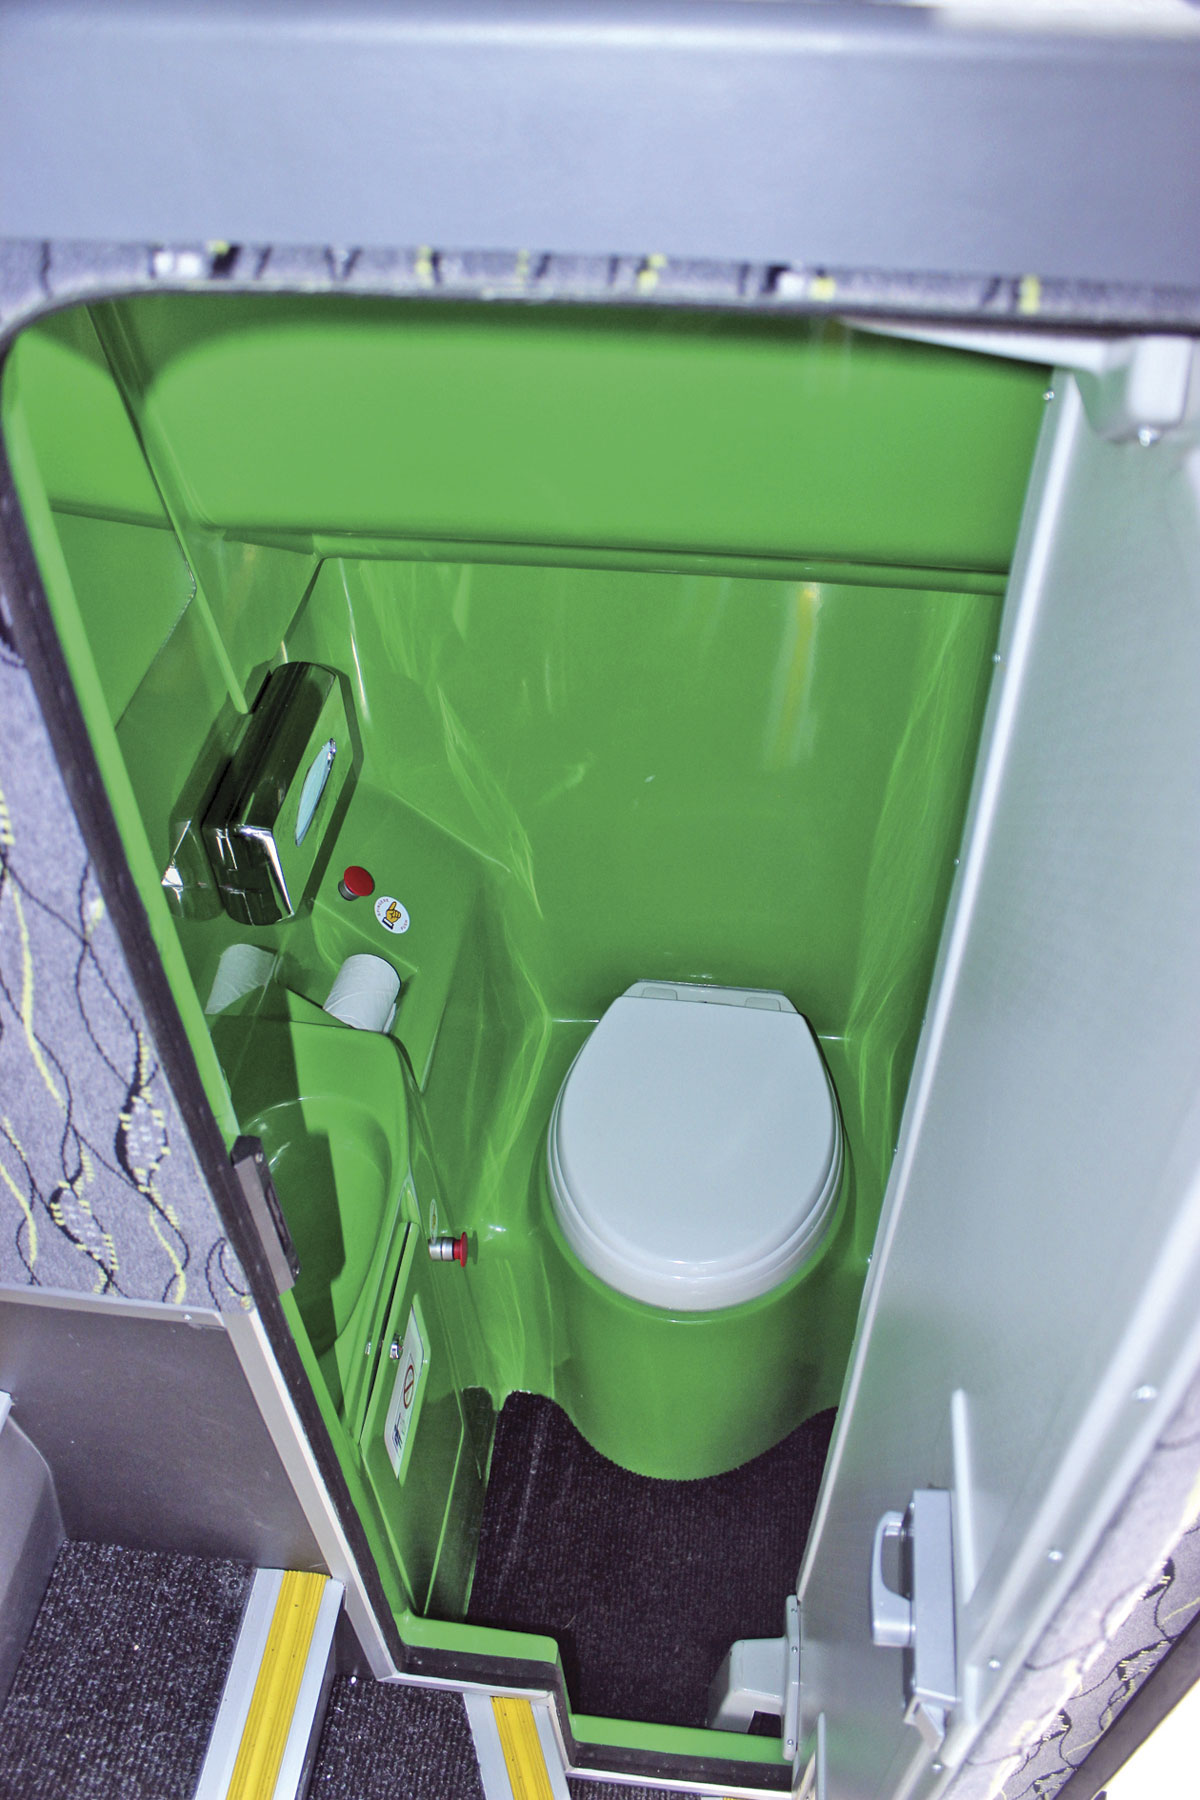 You can specify the colour you choose for the toilet interior. I don't think too many will be opting for the rather lurid green that Holmeswood have specified for their own fleet